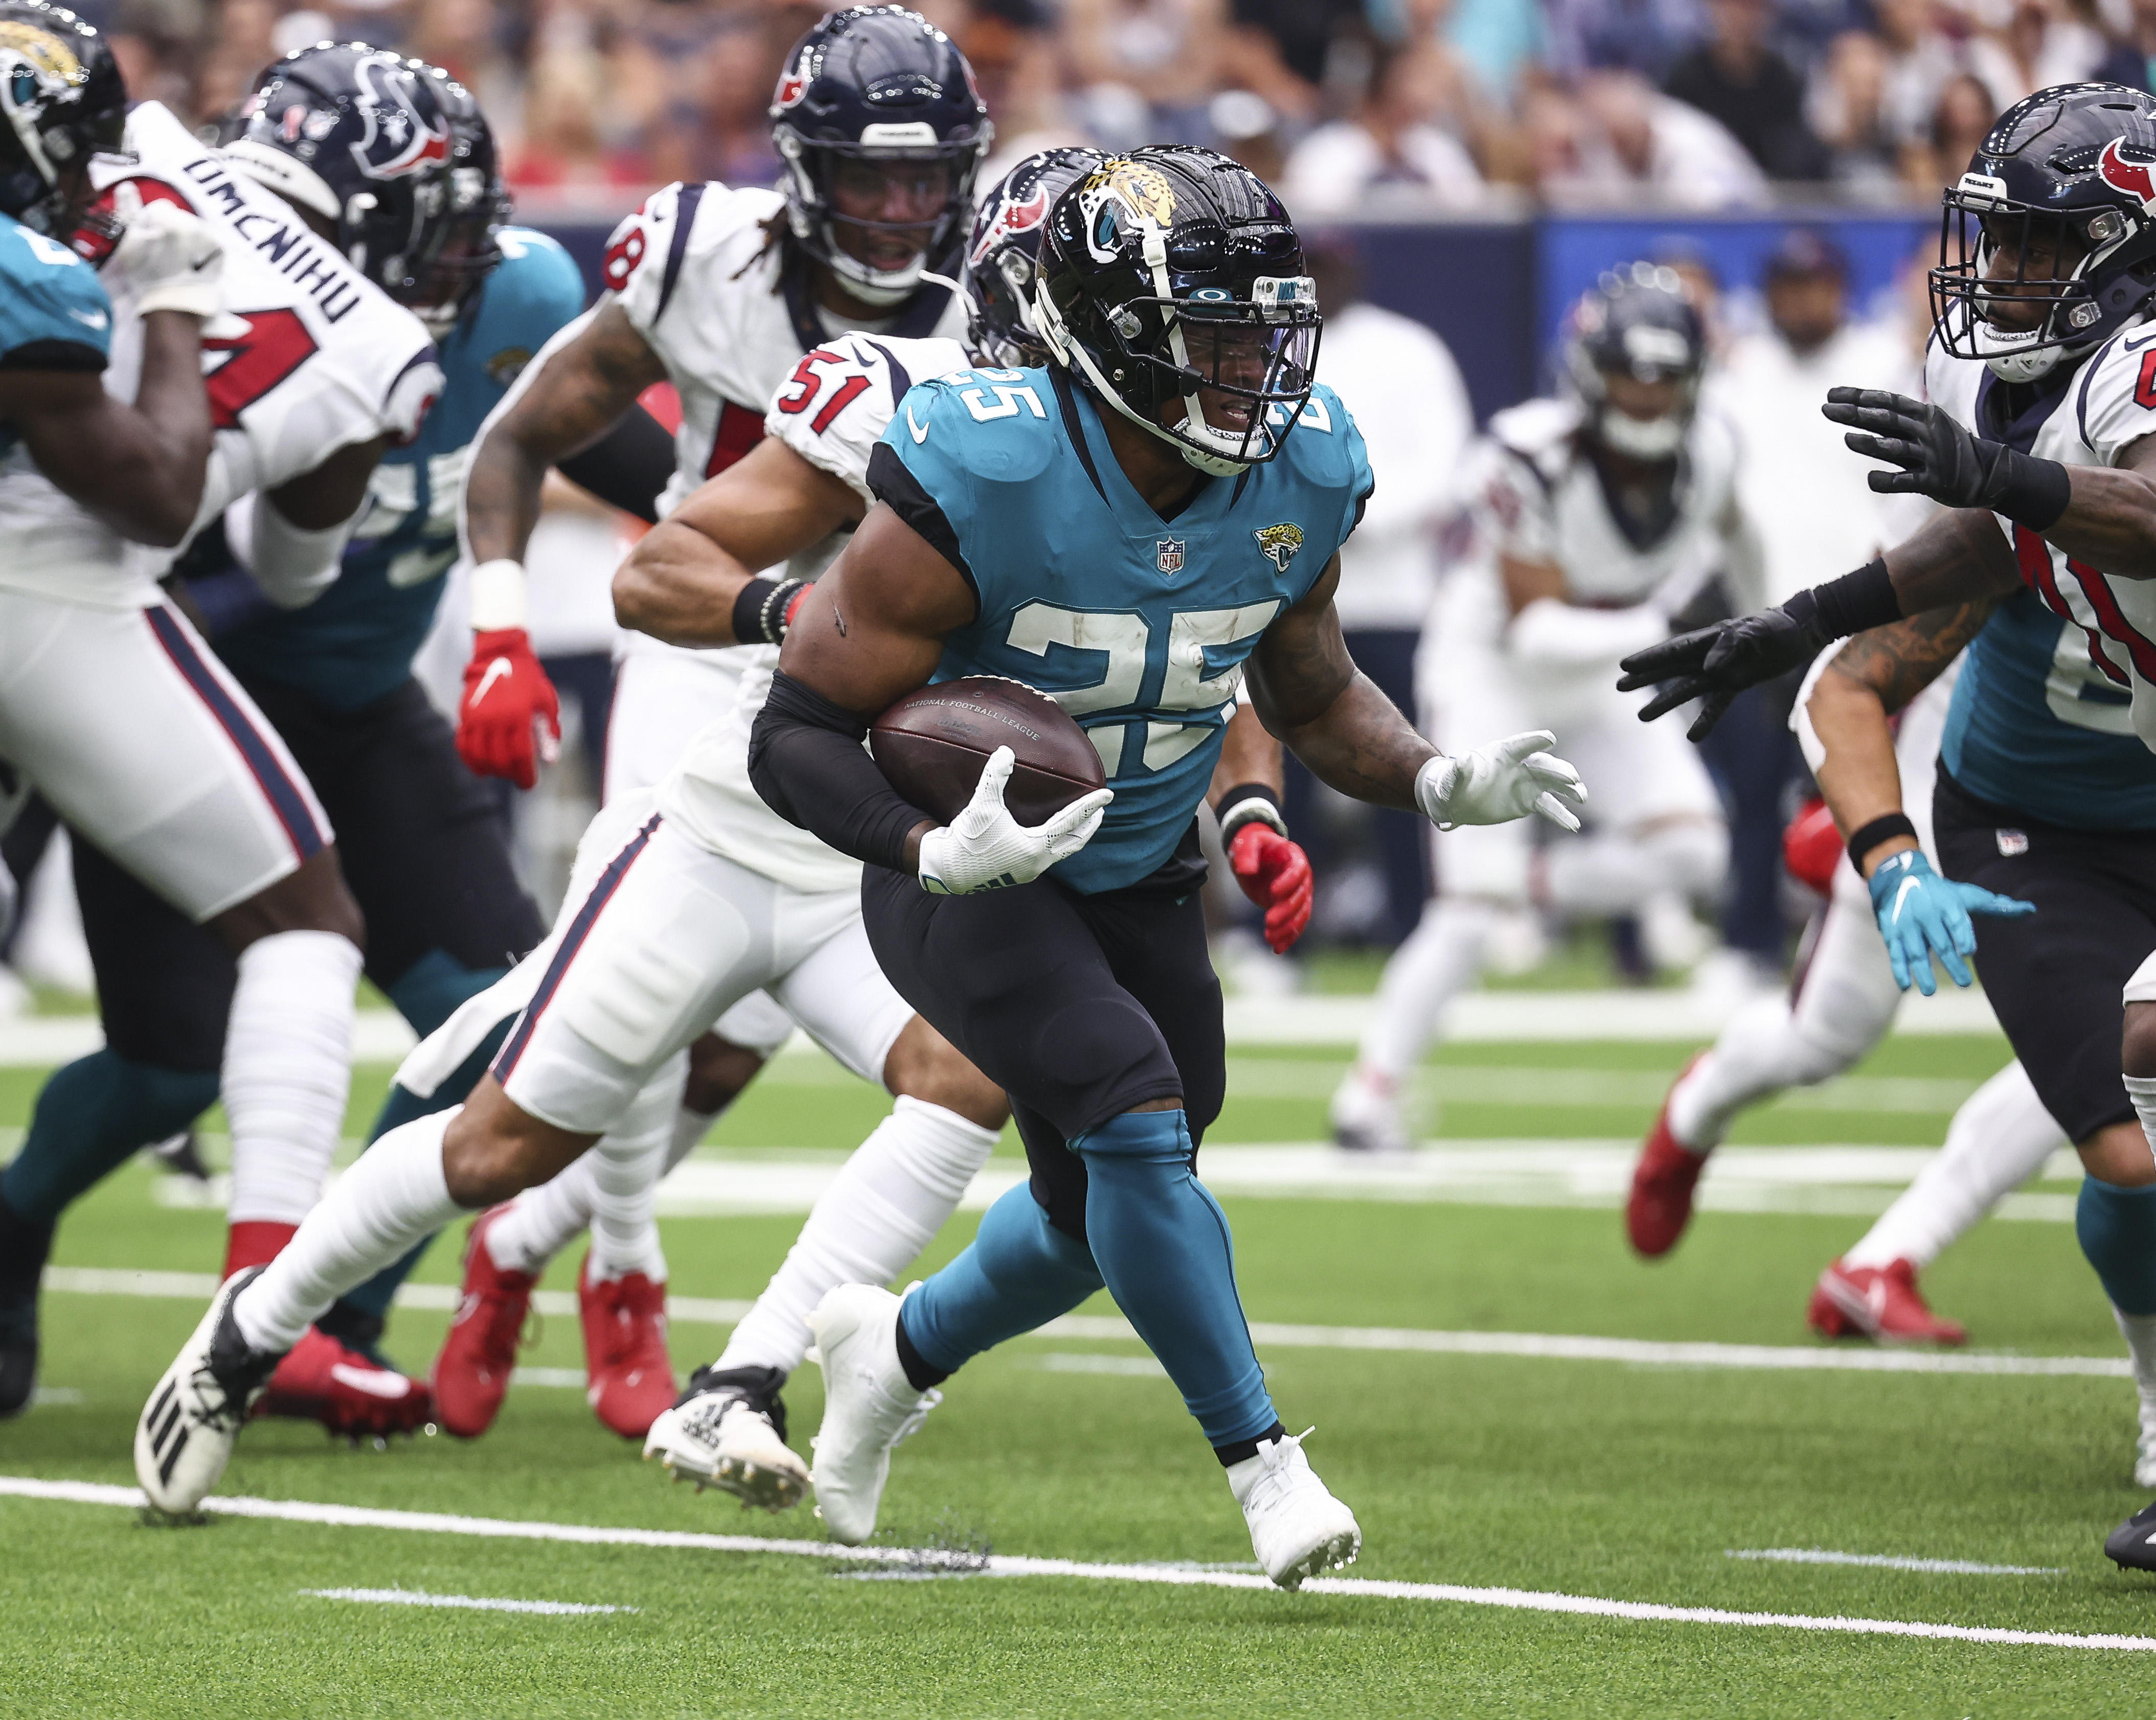 Jacksonville Jaguars running back James Robinson (25) runs with the ball during the second quarter against the Houston Texans at NRG Stadium.